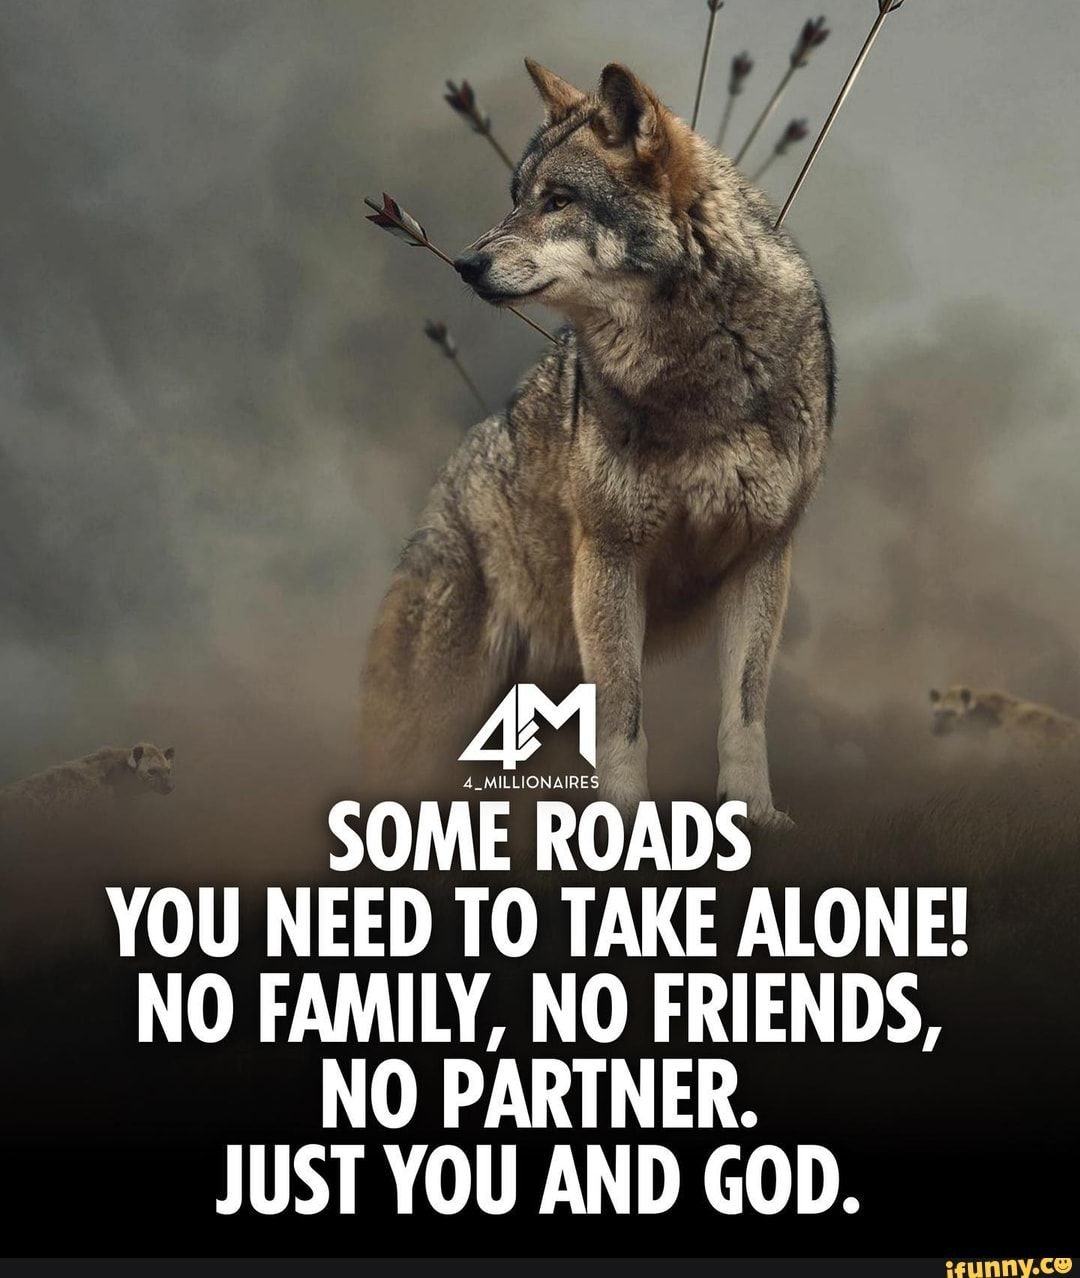 SOME ROADS YOU NEED TO TAKE ALONE! NO FAMILY, NO FRIENDS, NO PARTNER. JUST YOU AND GOD. - )